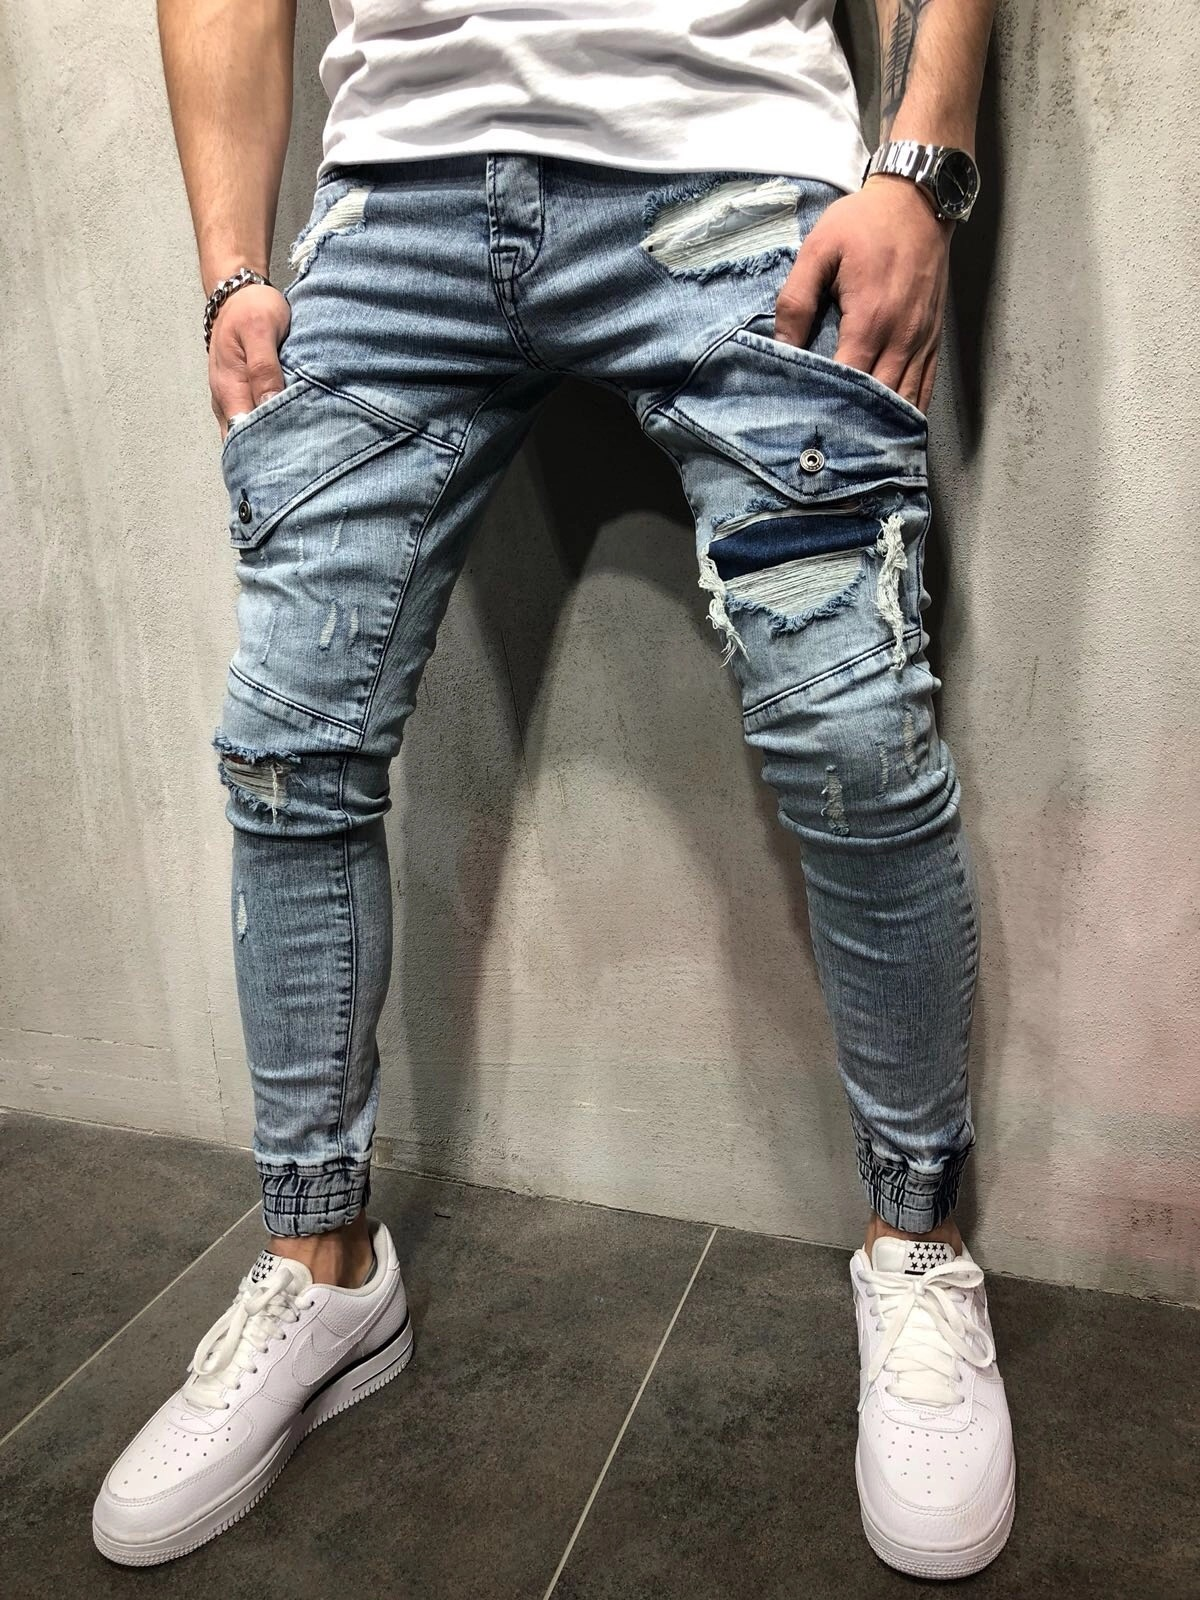 New Style With Holes MEN'S Jeans Slim Fit Zipper Retro Beam Leg Skinny Pants Fashion Man Jeans